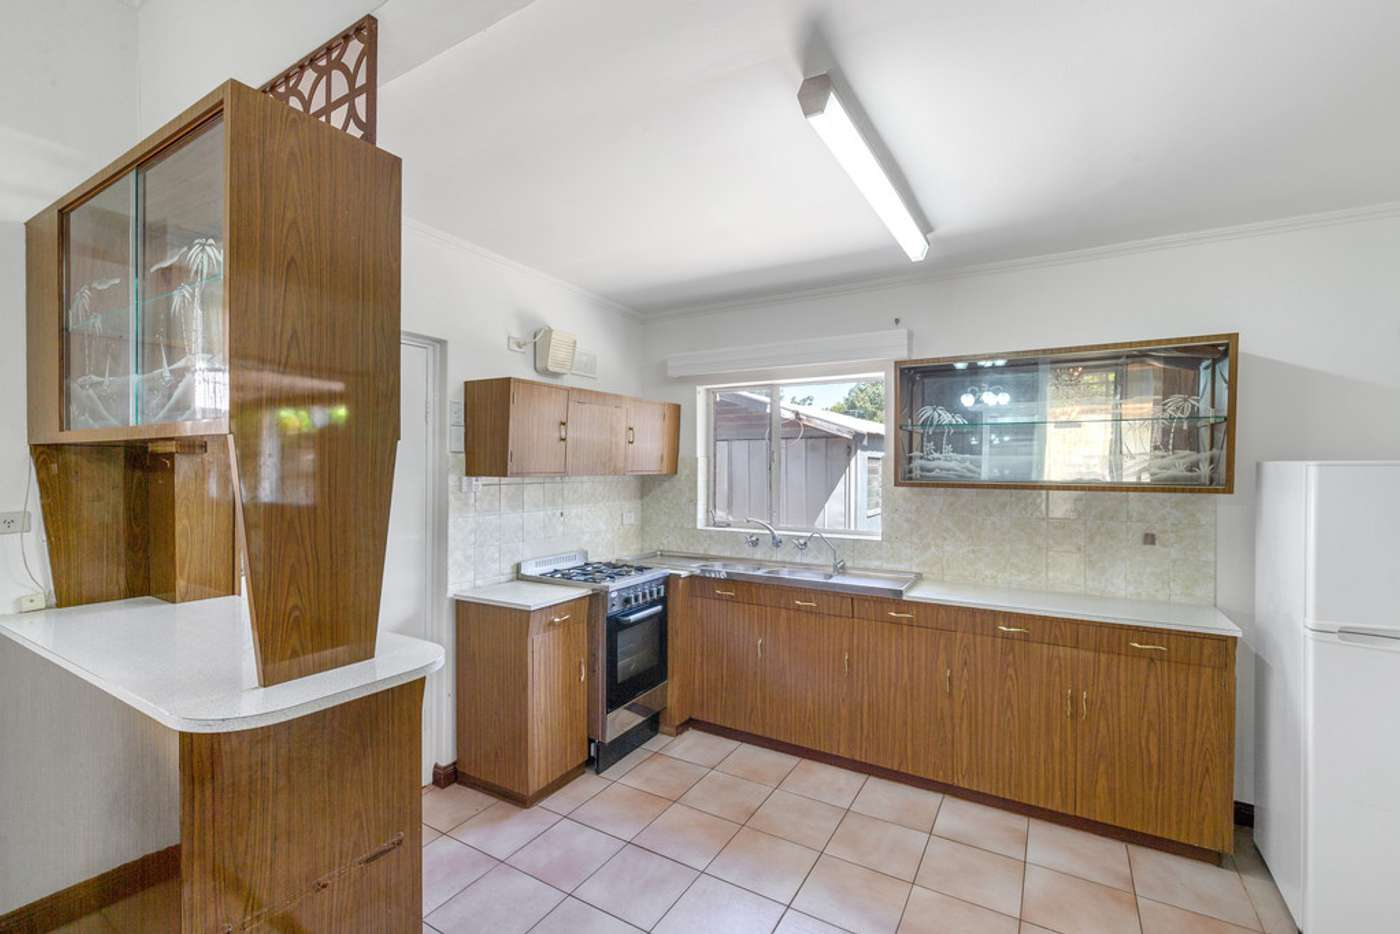 Fifth view of Homely house listing, 35 Elizabeth Street, Evandale SA 5069